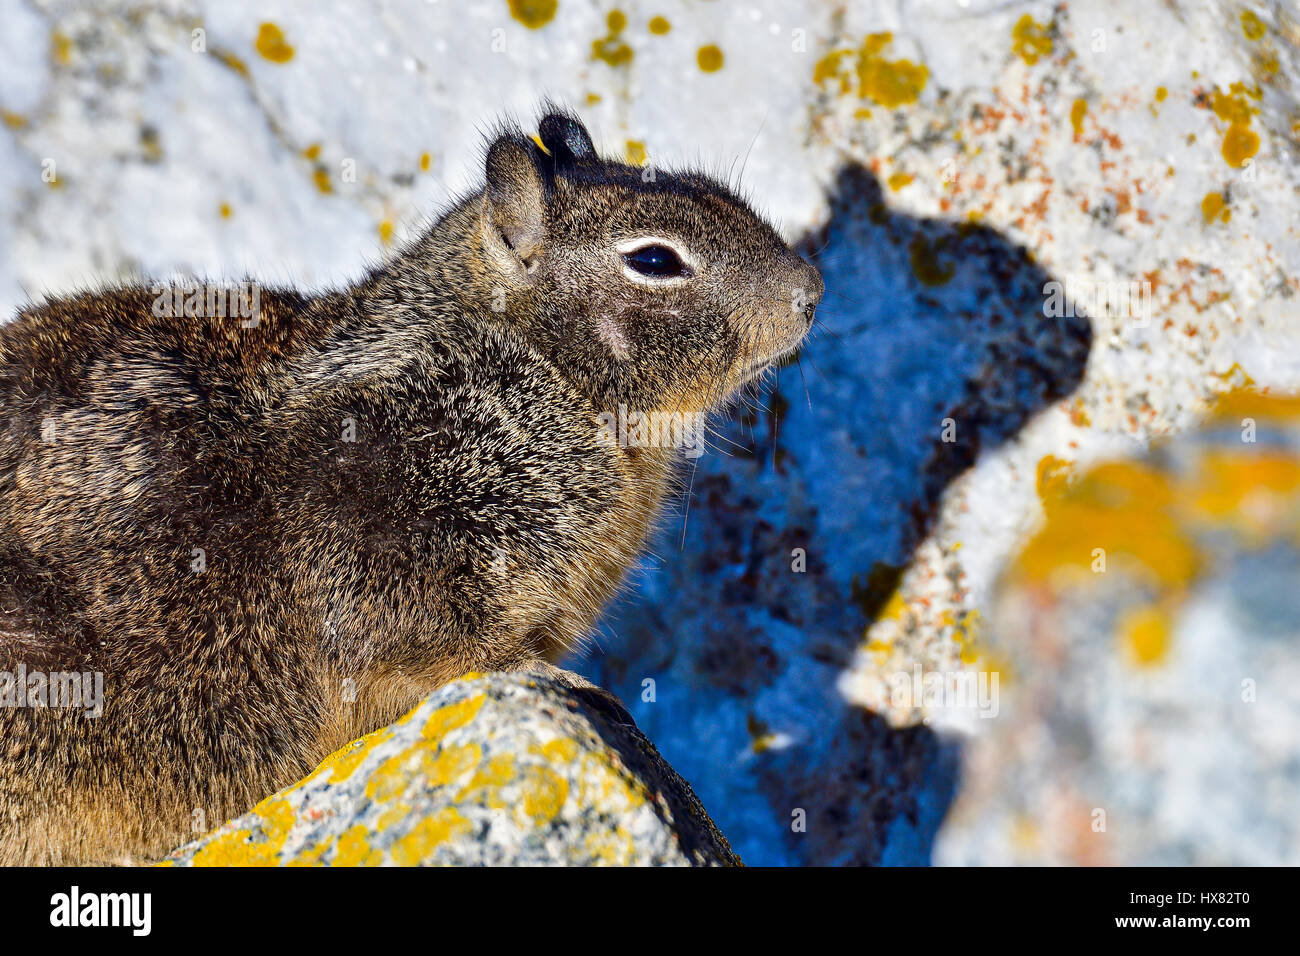 California ground squirrel - Stock Image